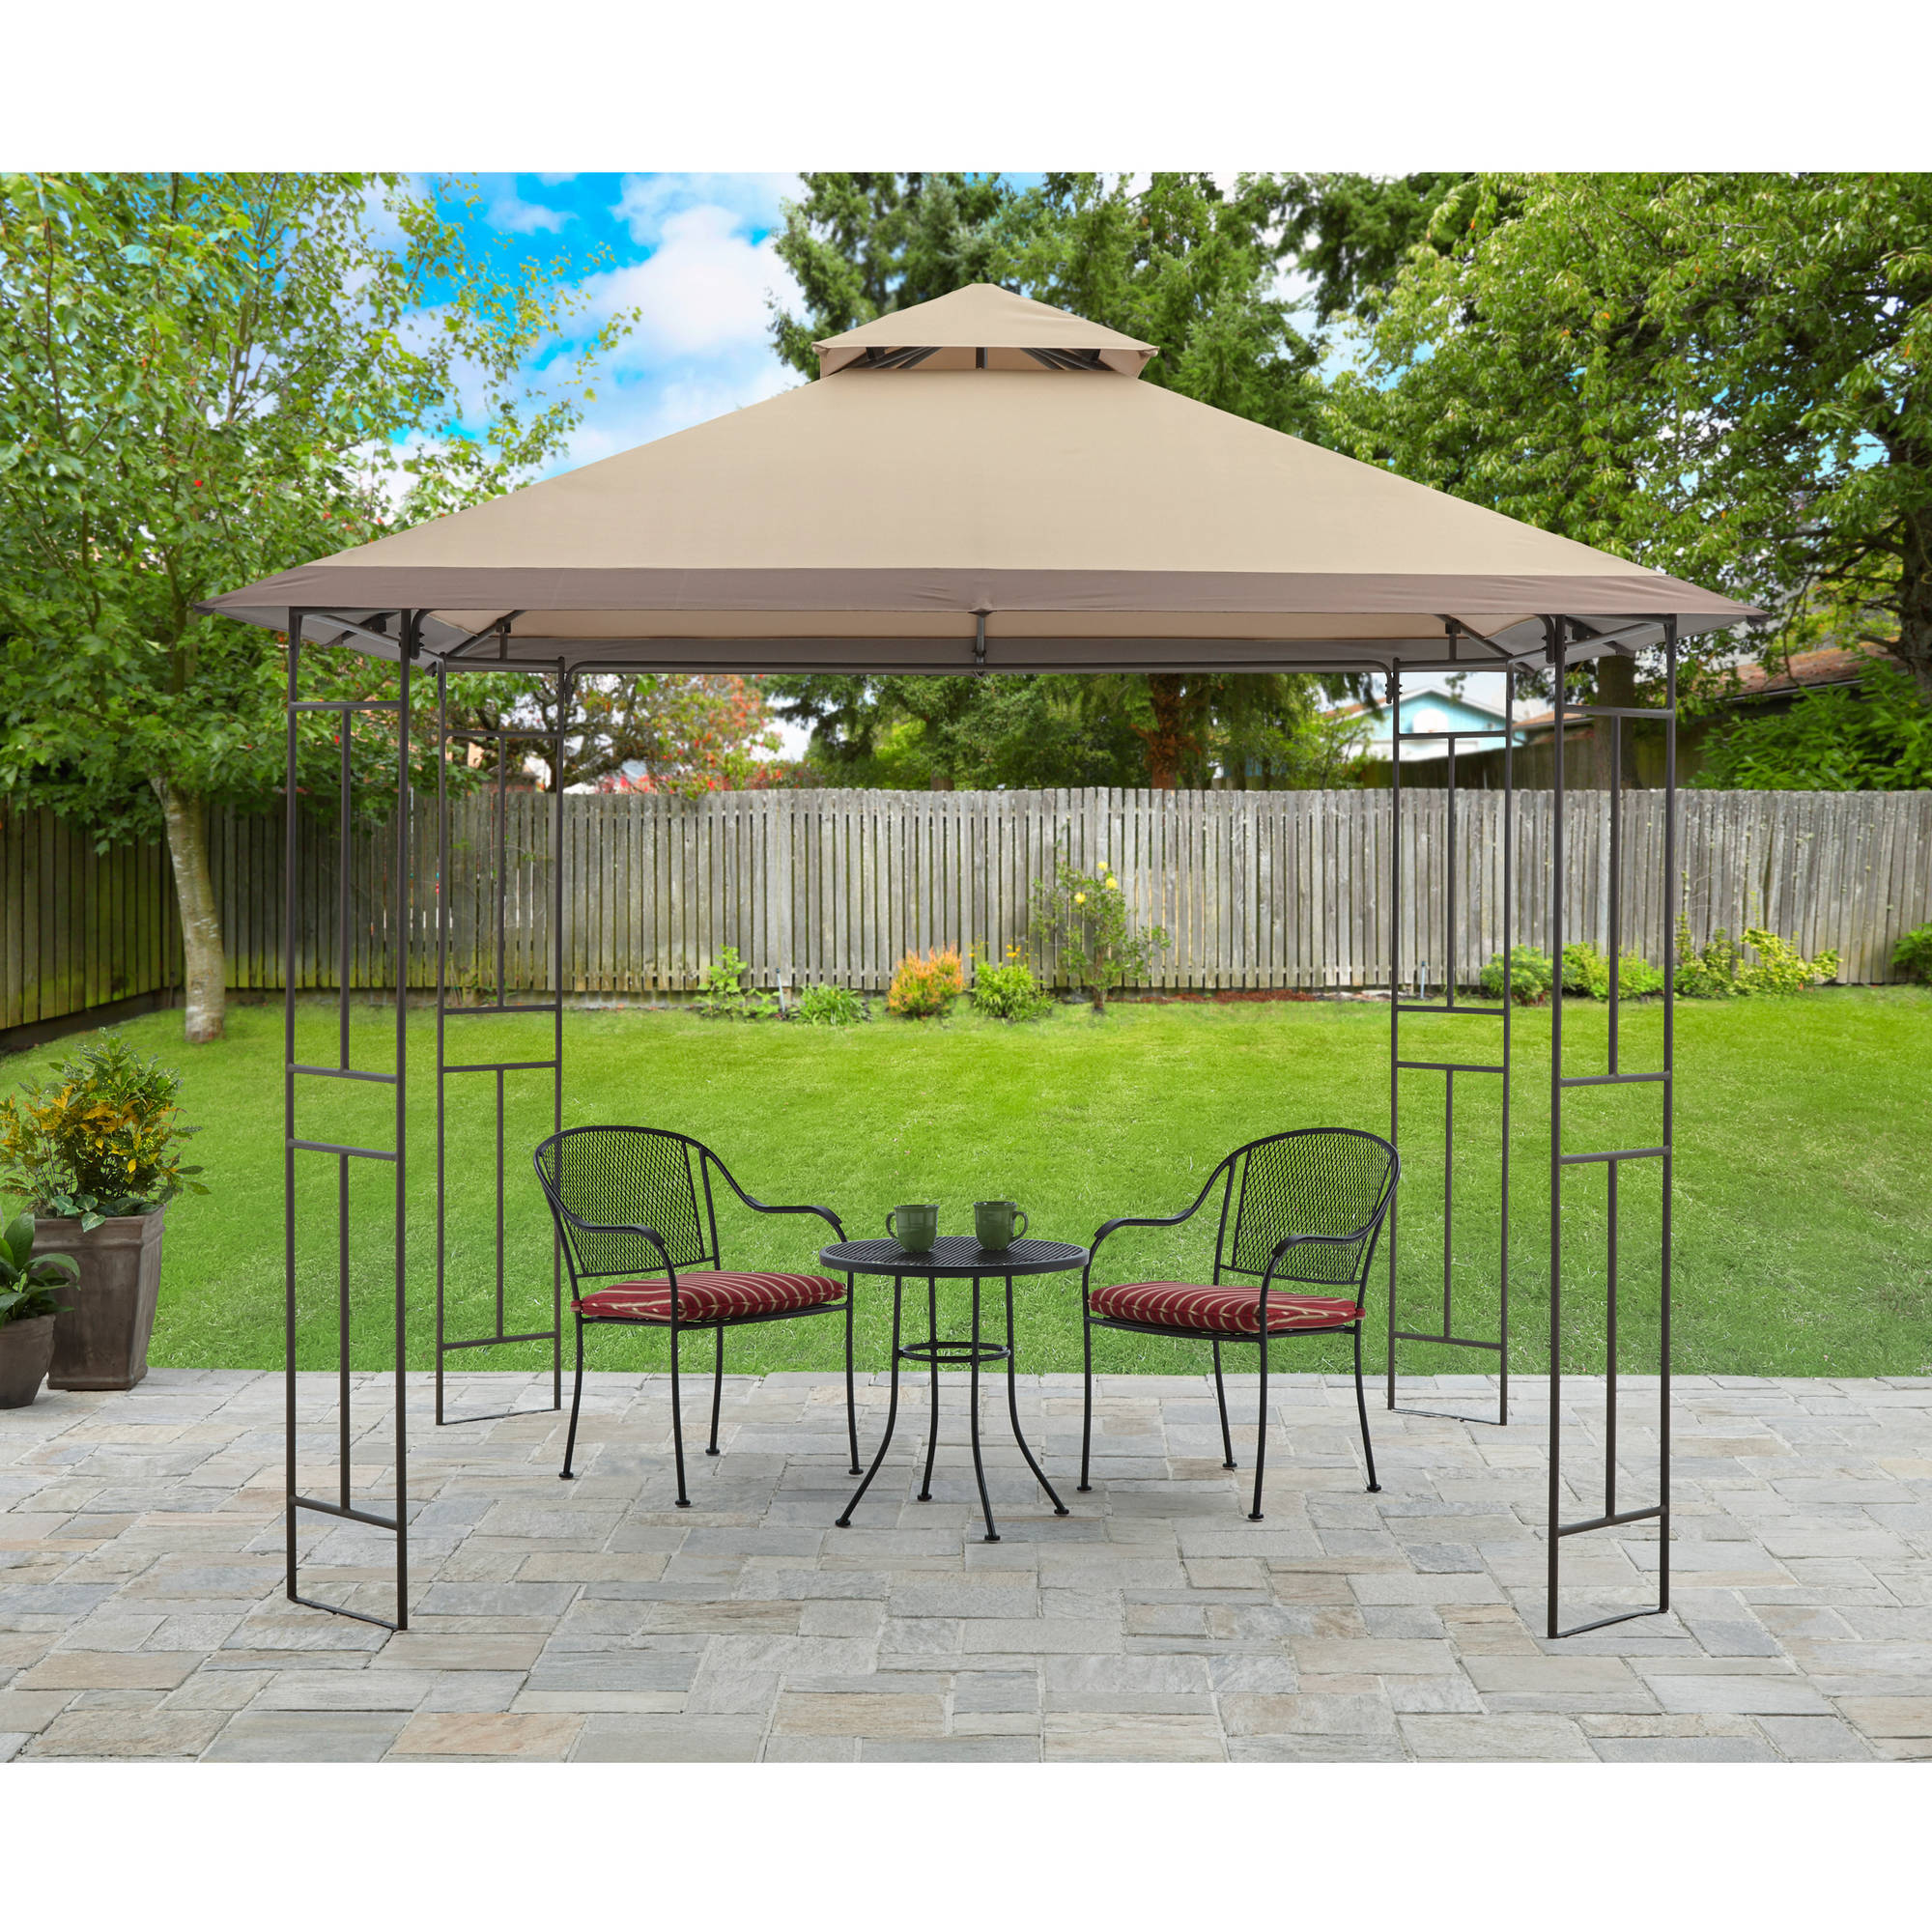 Mainstays Toni Gazebo, 10' x 10' by Gazebos